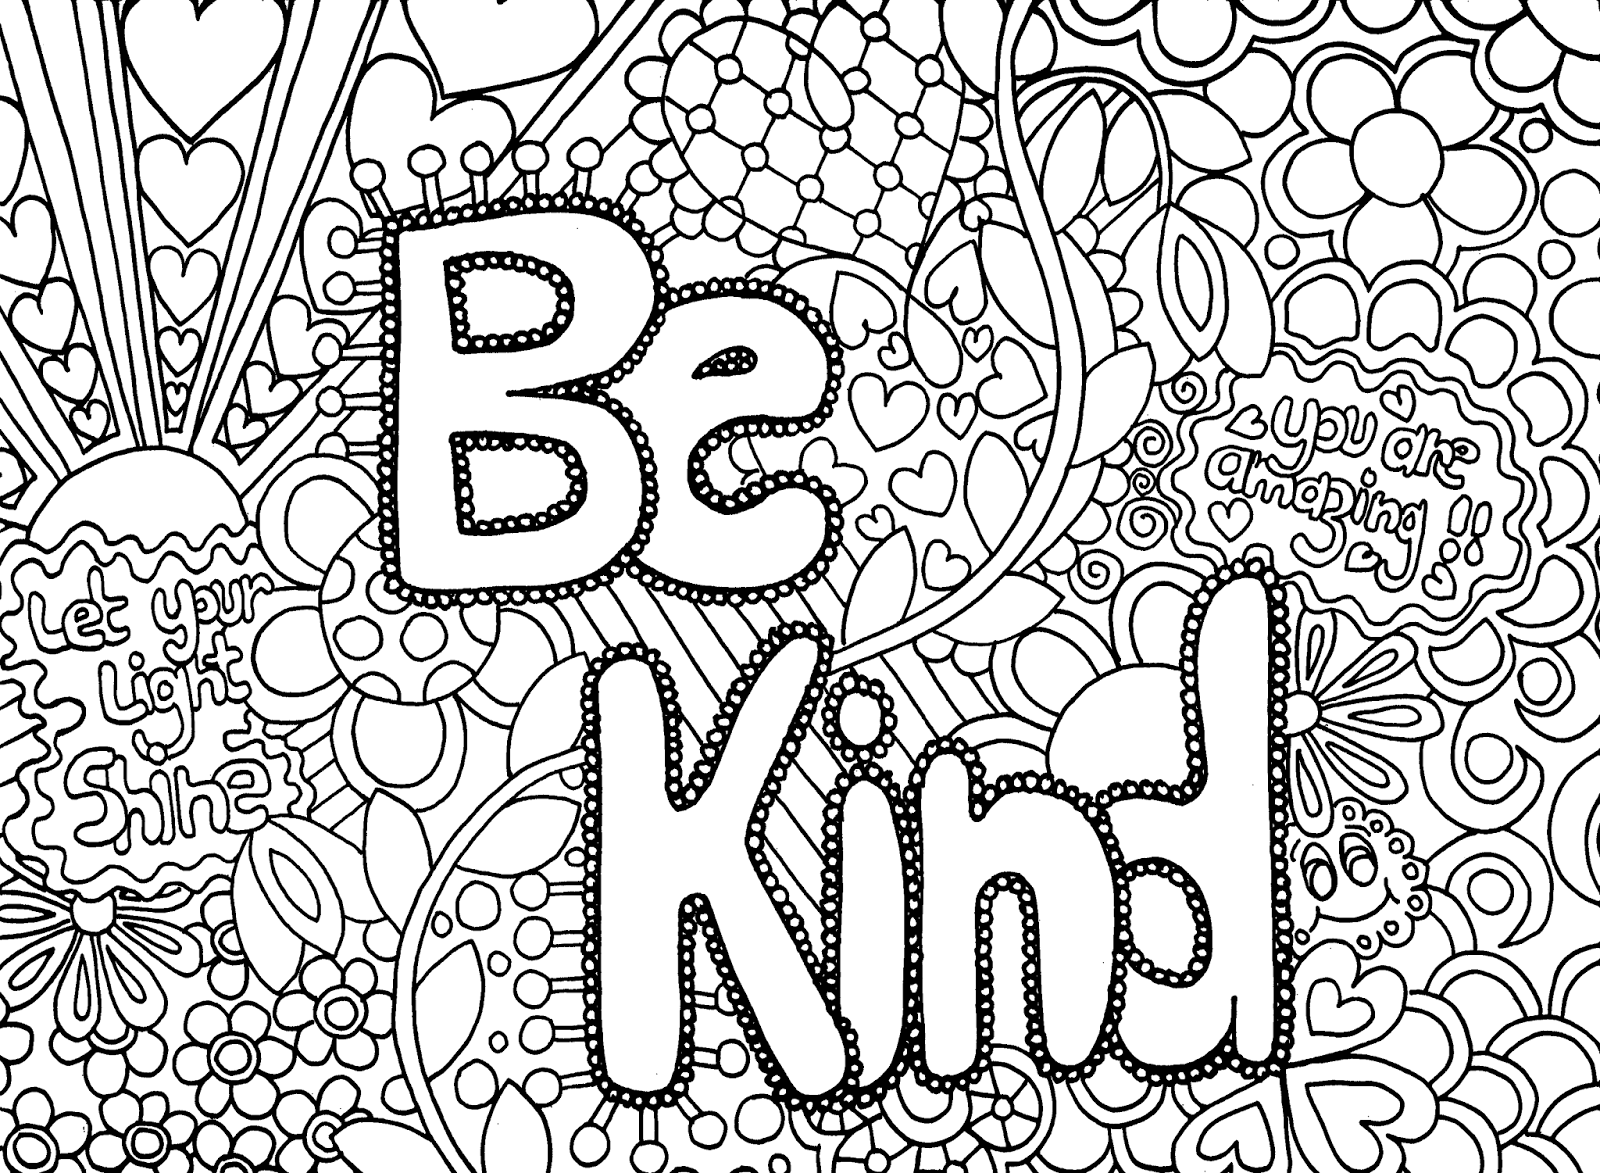 Printable Difficult Coloring Pages Unique Hard Coloring Pages For Adults  Best Coloring Pages For Kids